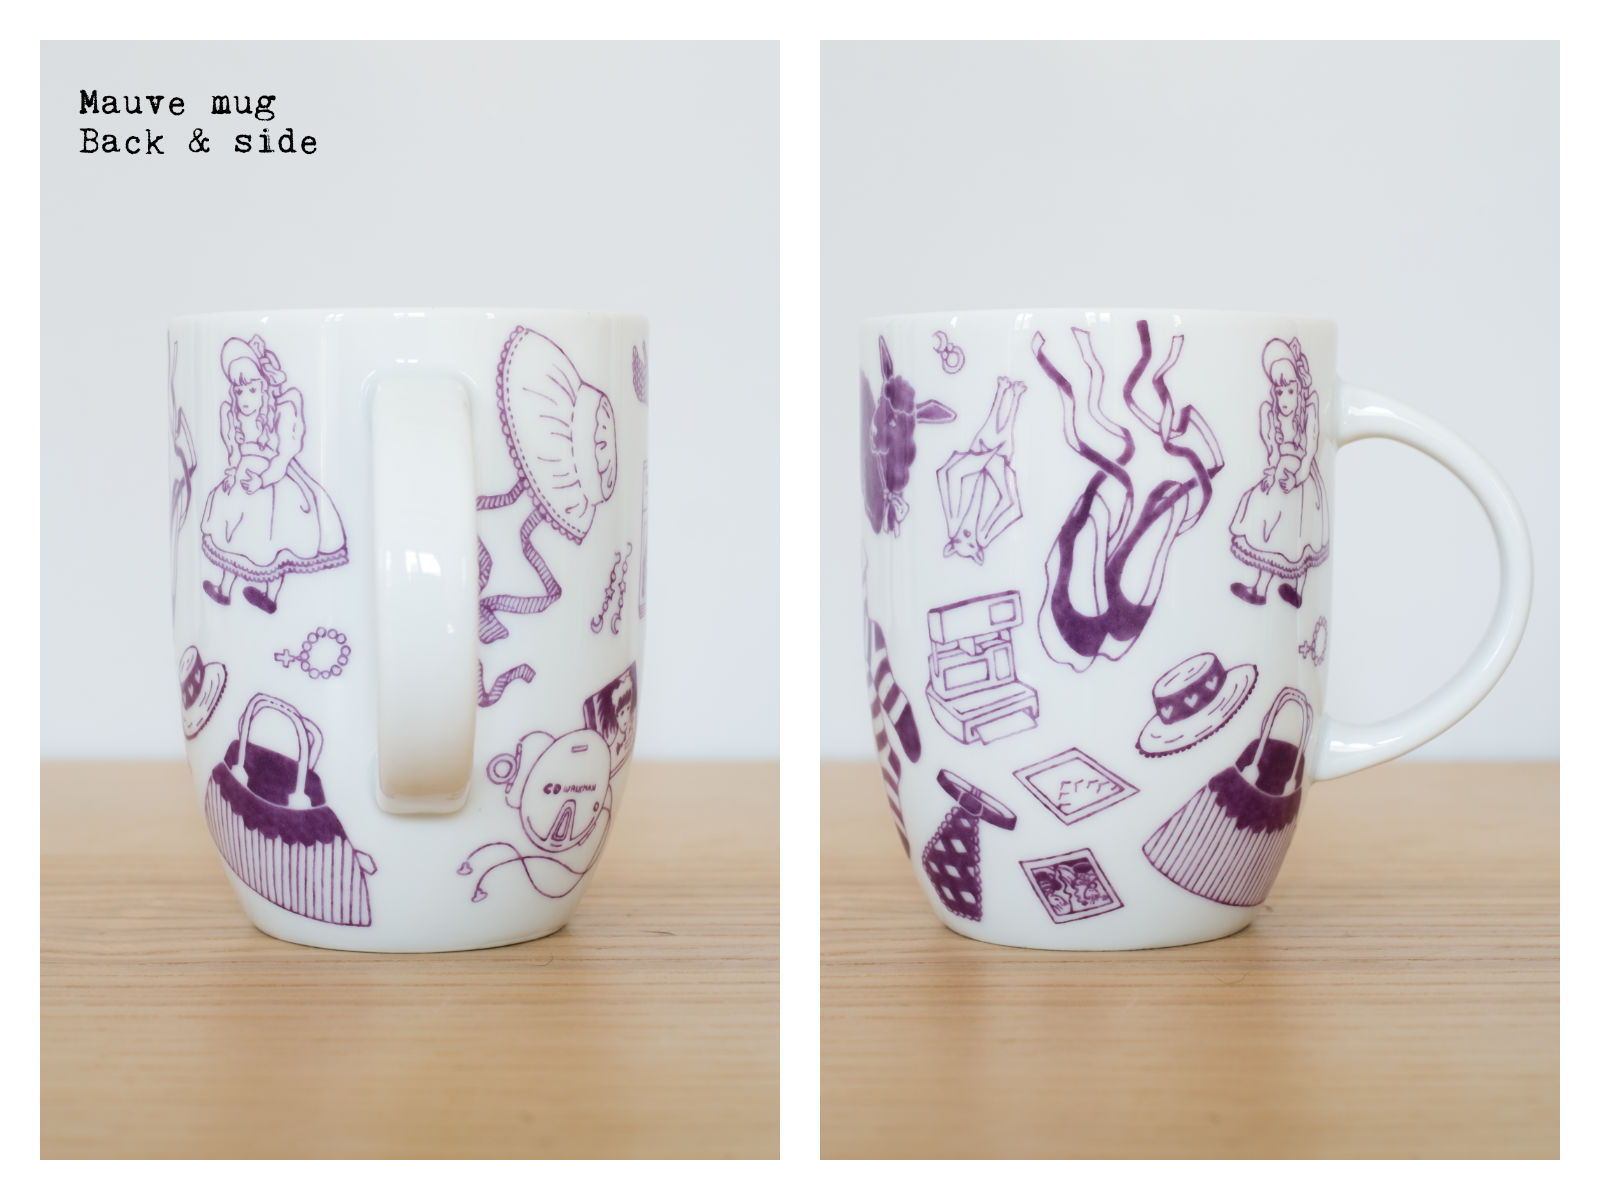 "Back & side of a mauvemug from ""Oldschool Lolita"", a collection of painted porcelains by messalyn."